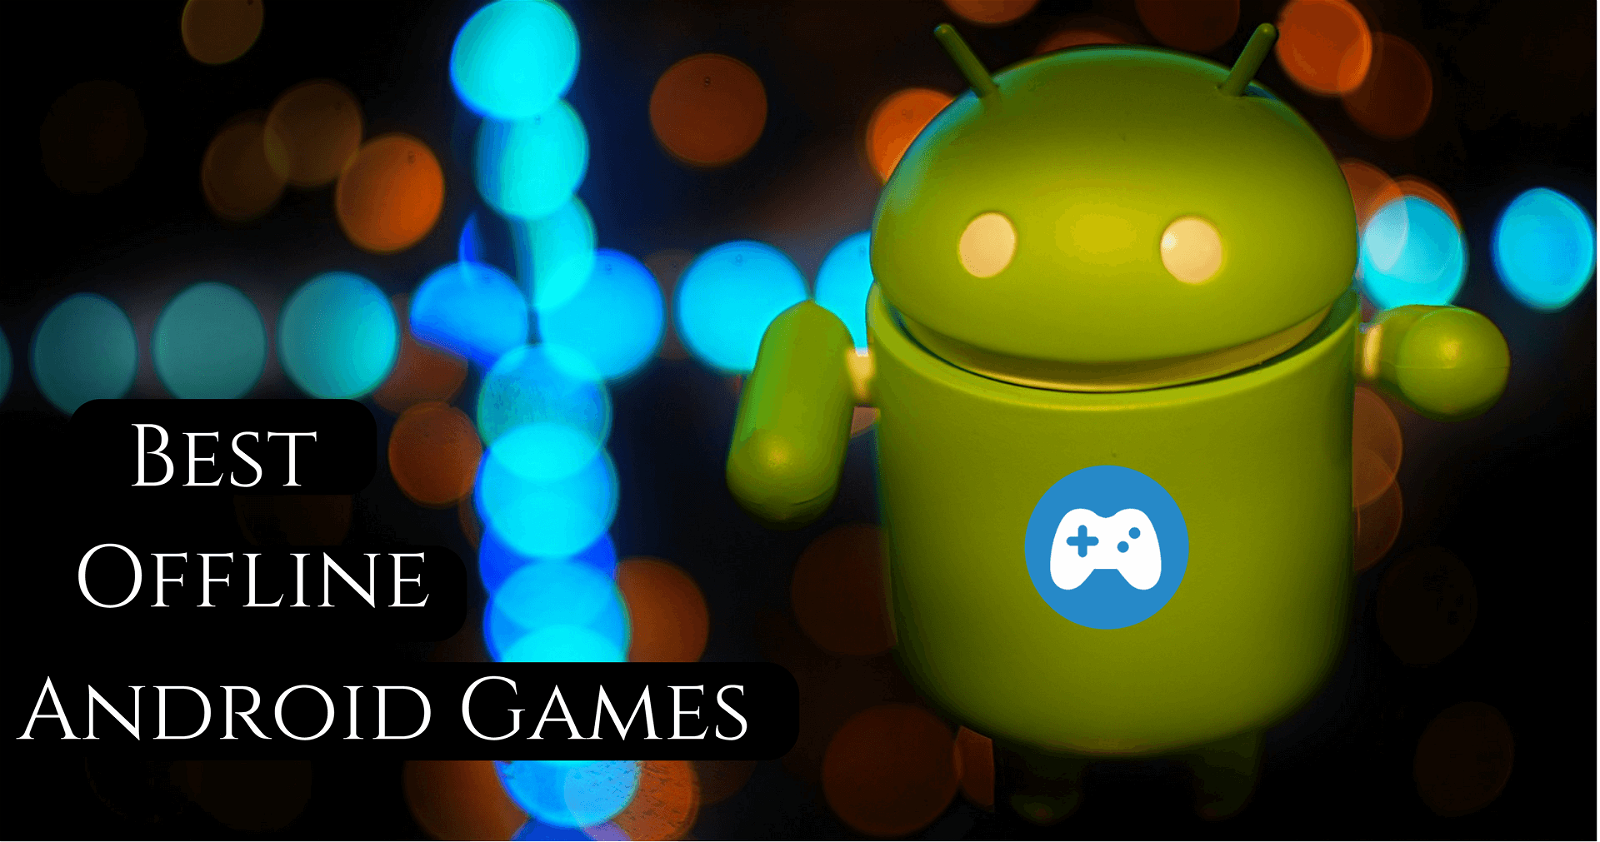 No WiFi? No Problem! Top 10 New OFFLINE Android Games of 2020